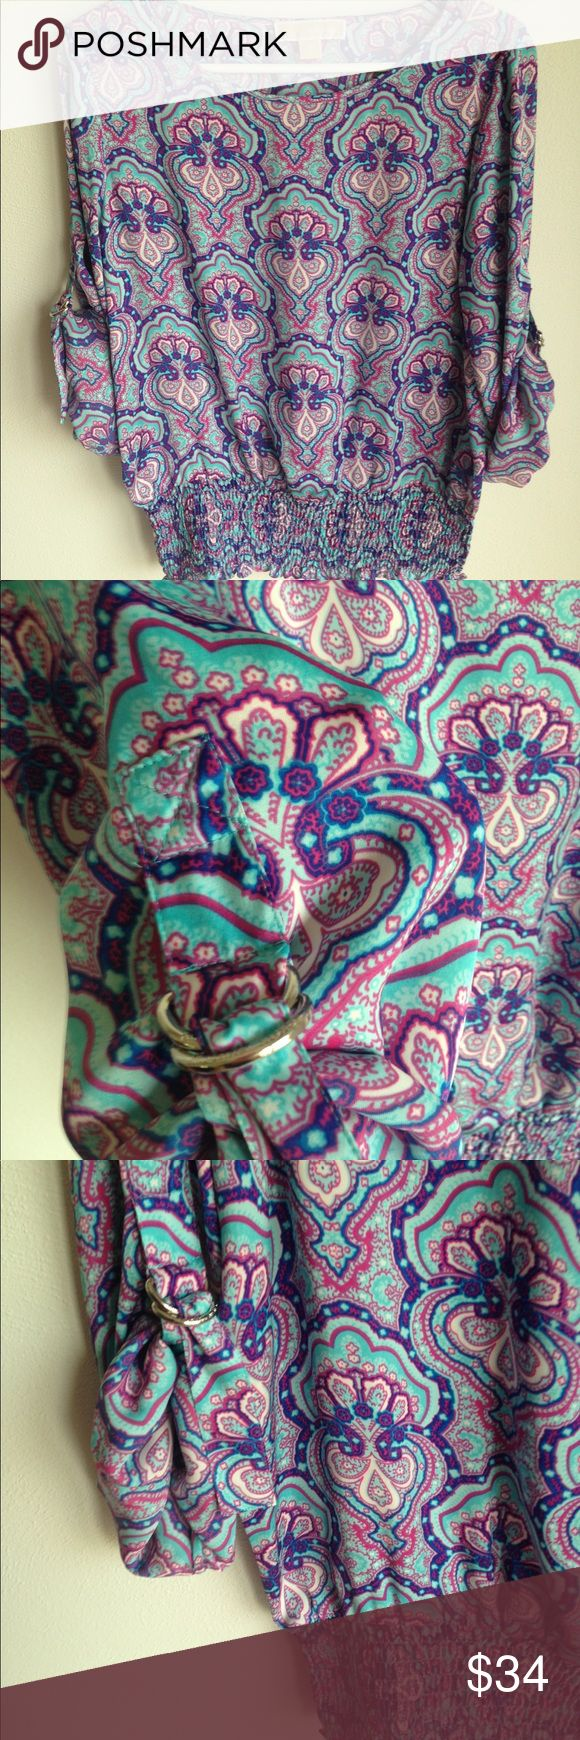 """Michael Kors paisley printed long sleeve blouse Michael Kors paisley printed blouse with smocked waist and adjustable silver buckles on sleeves. Measures approximately 42"""" bust, 30"""" waistband (stretches), and 24"""" long. MICHAEL Michael Kors Tops Blouses"""